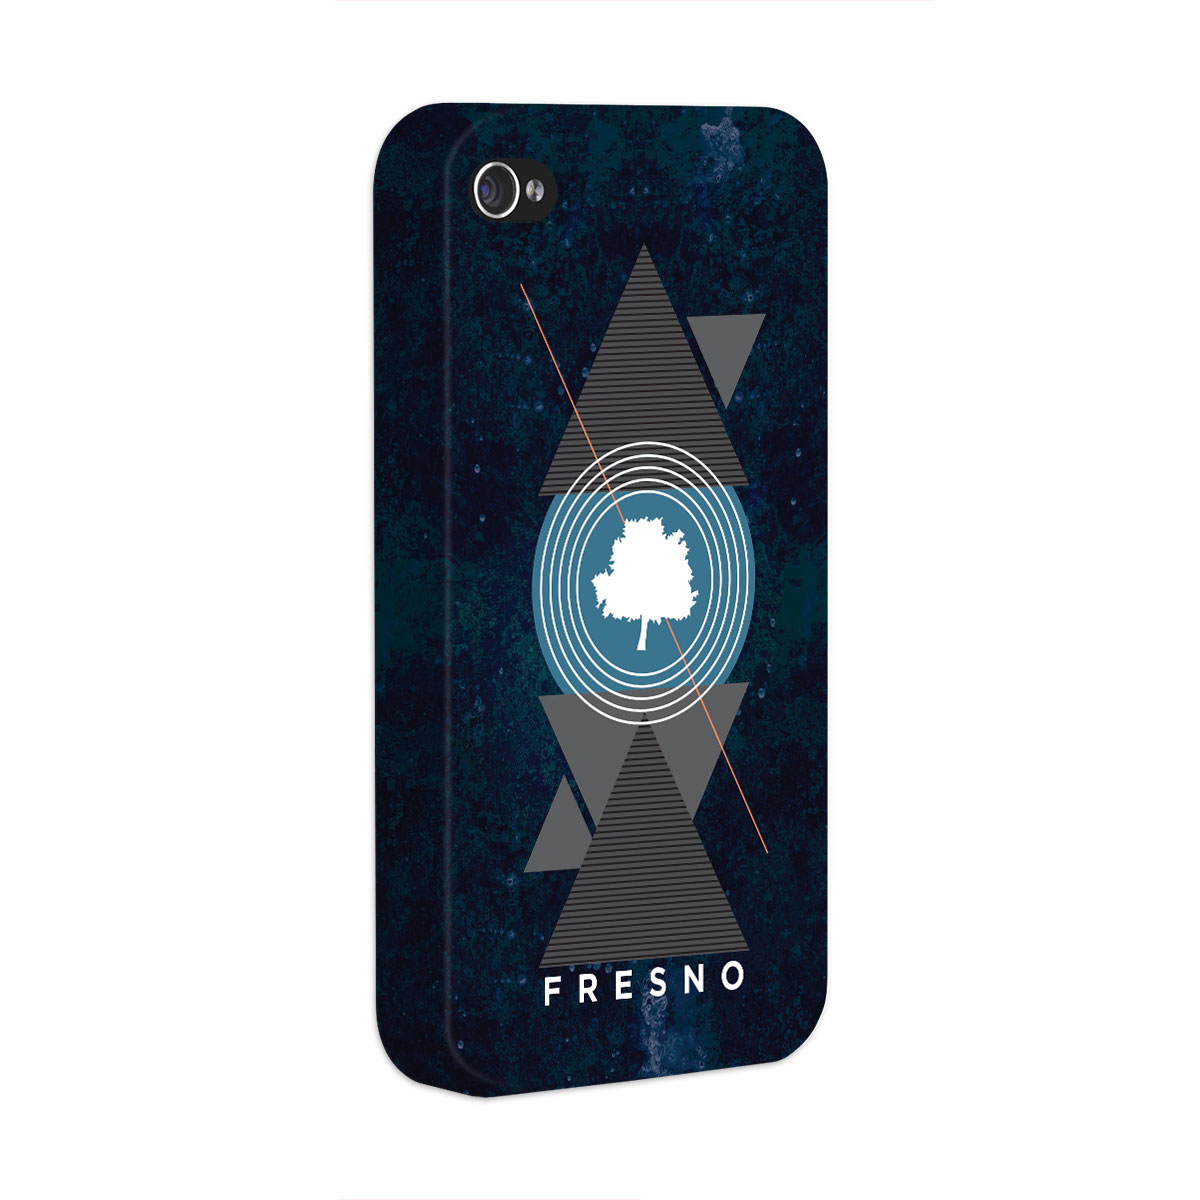 Capa para iPhone 4/4S Fresno Geometric